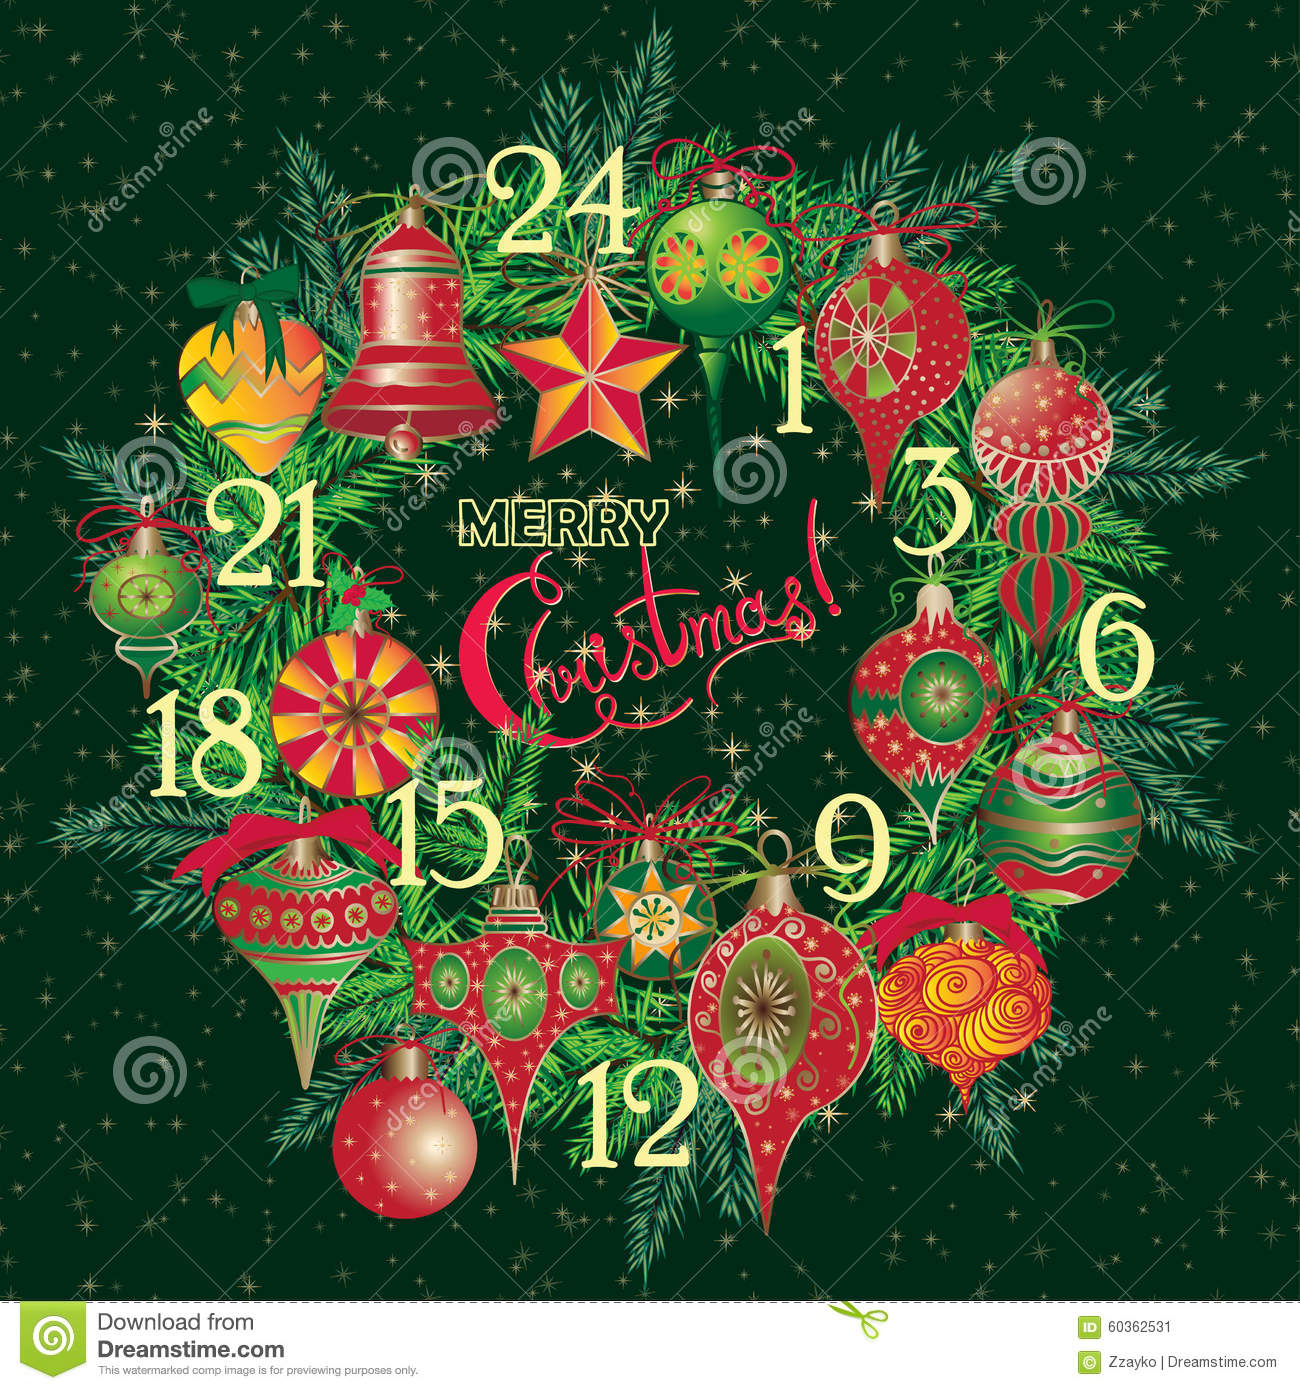 Christmas Calendar Illustration : Vintage christmas advent calendar stock illustration